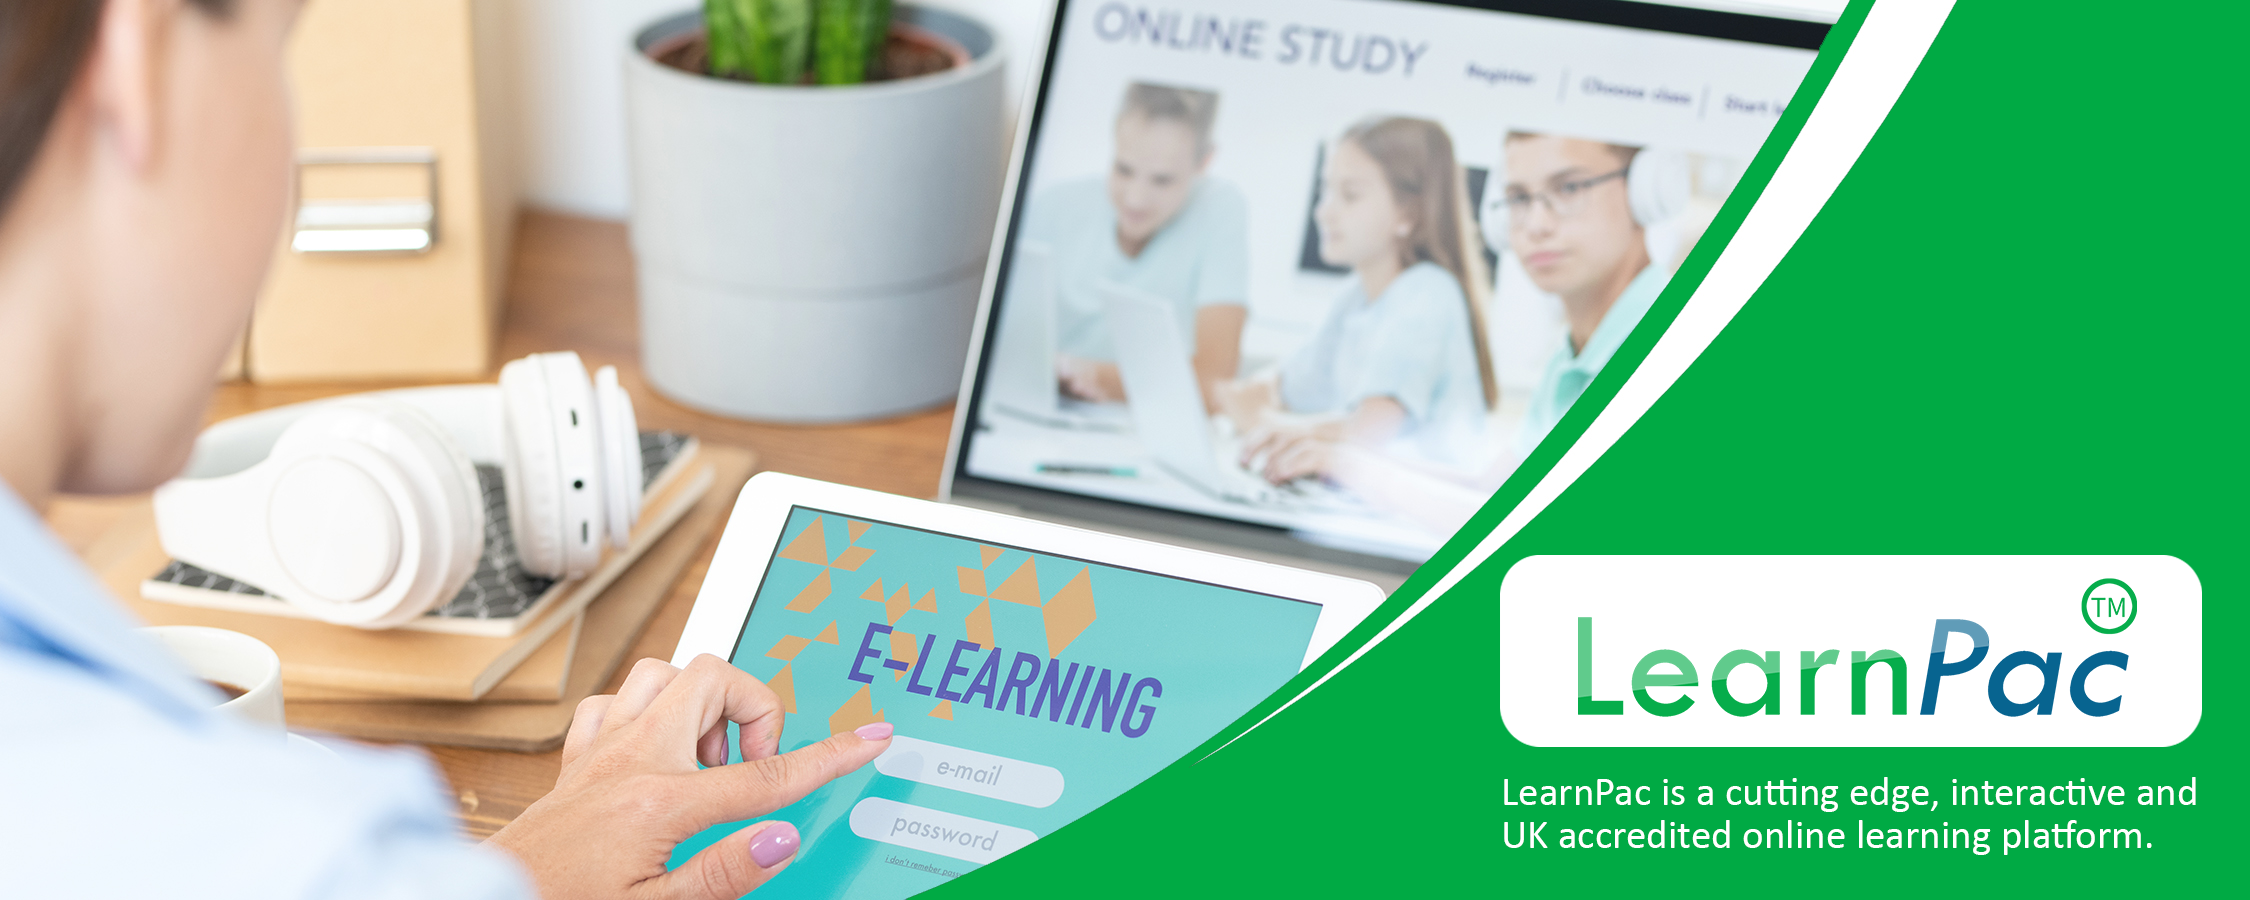 Dignity, Privacy and Respect - Online Learning Courses - E-Learning Courses - LearnPac Systems UK -